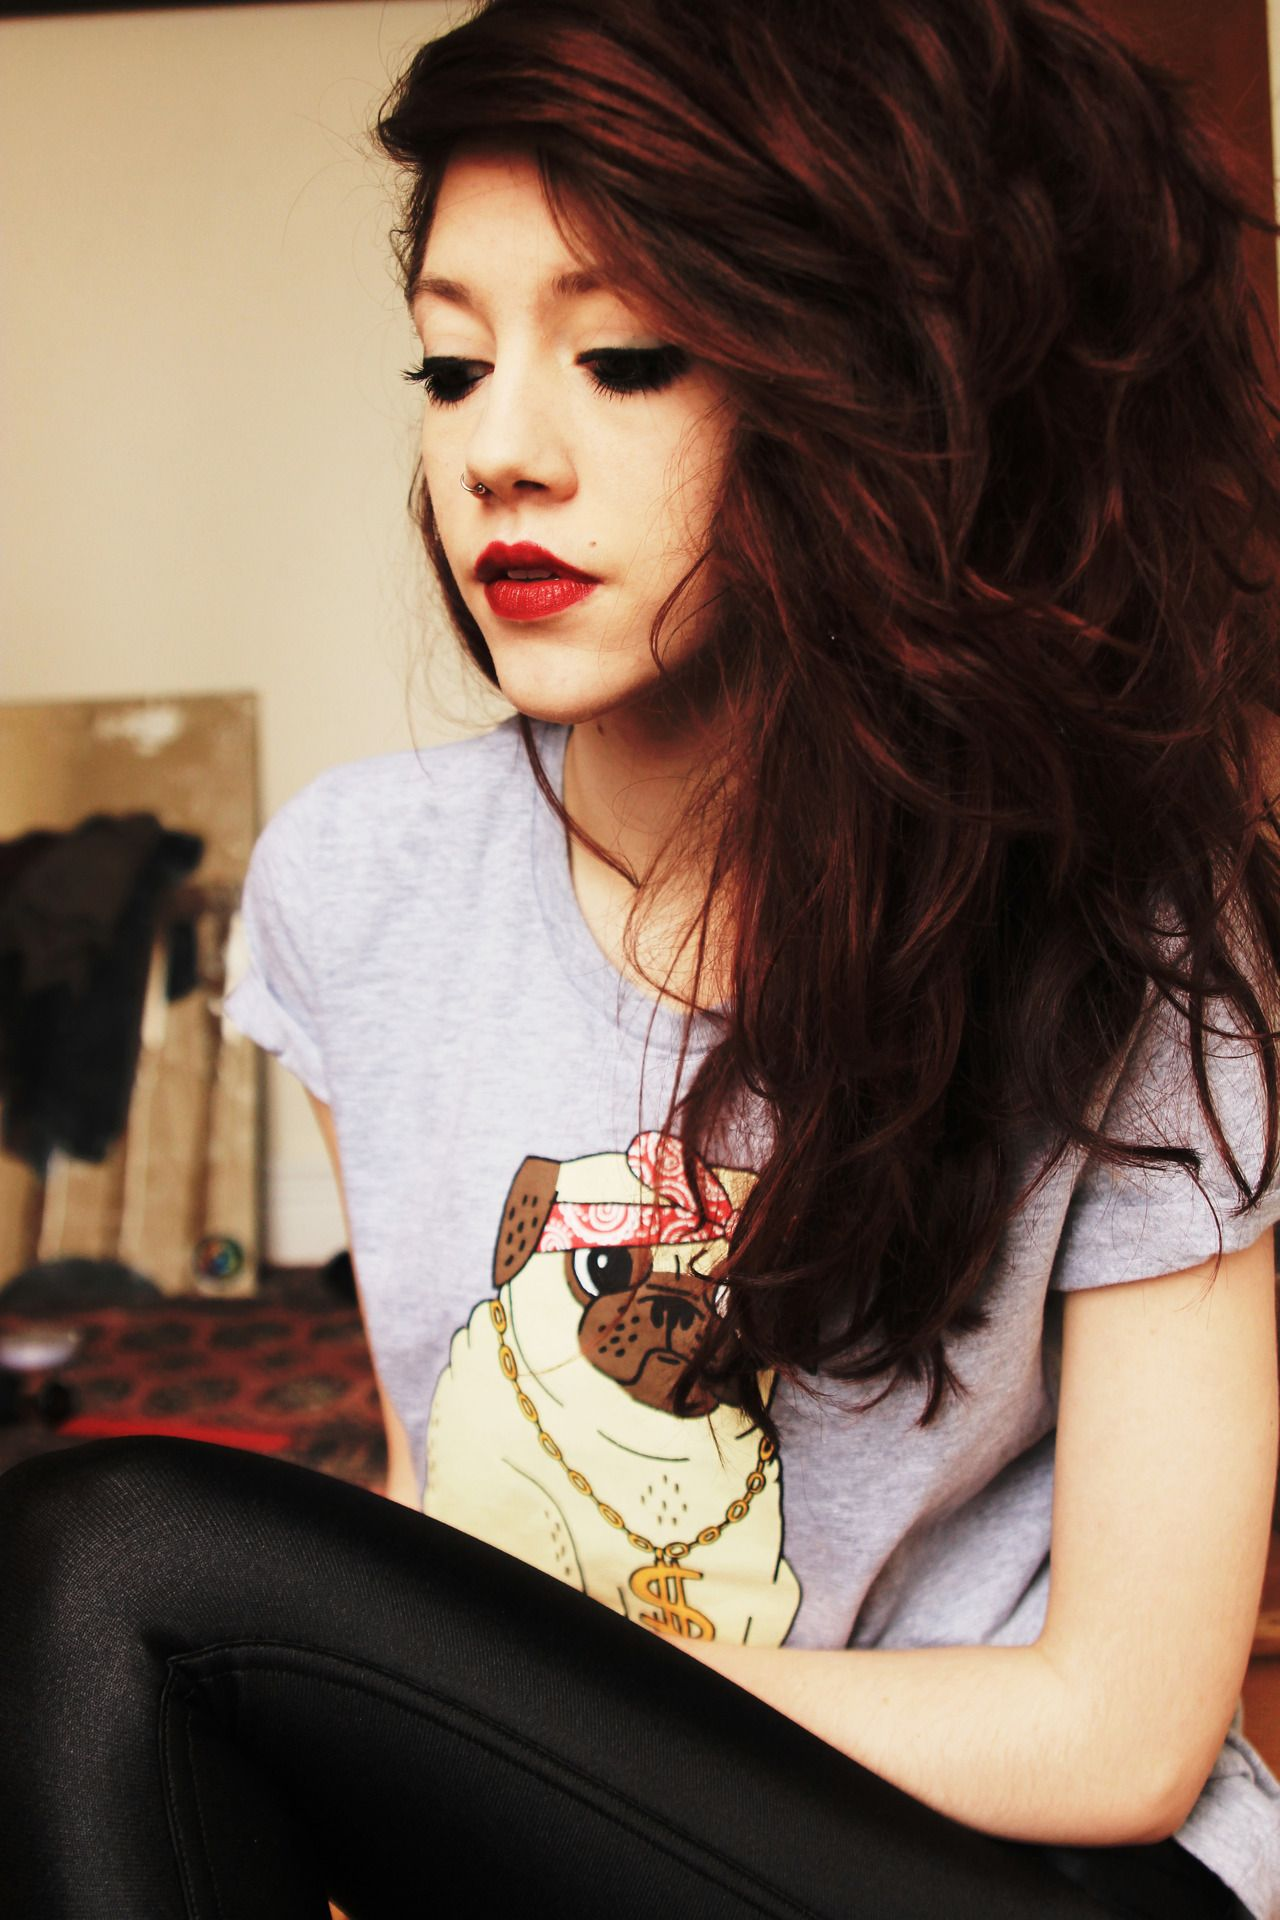 Grungey feel with this look and i love the lipstick and the tshirt